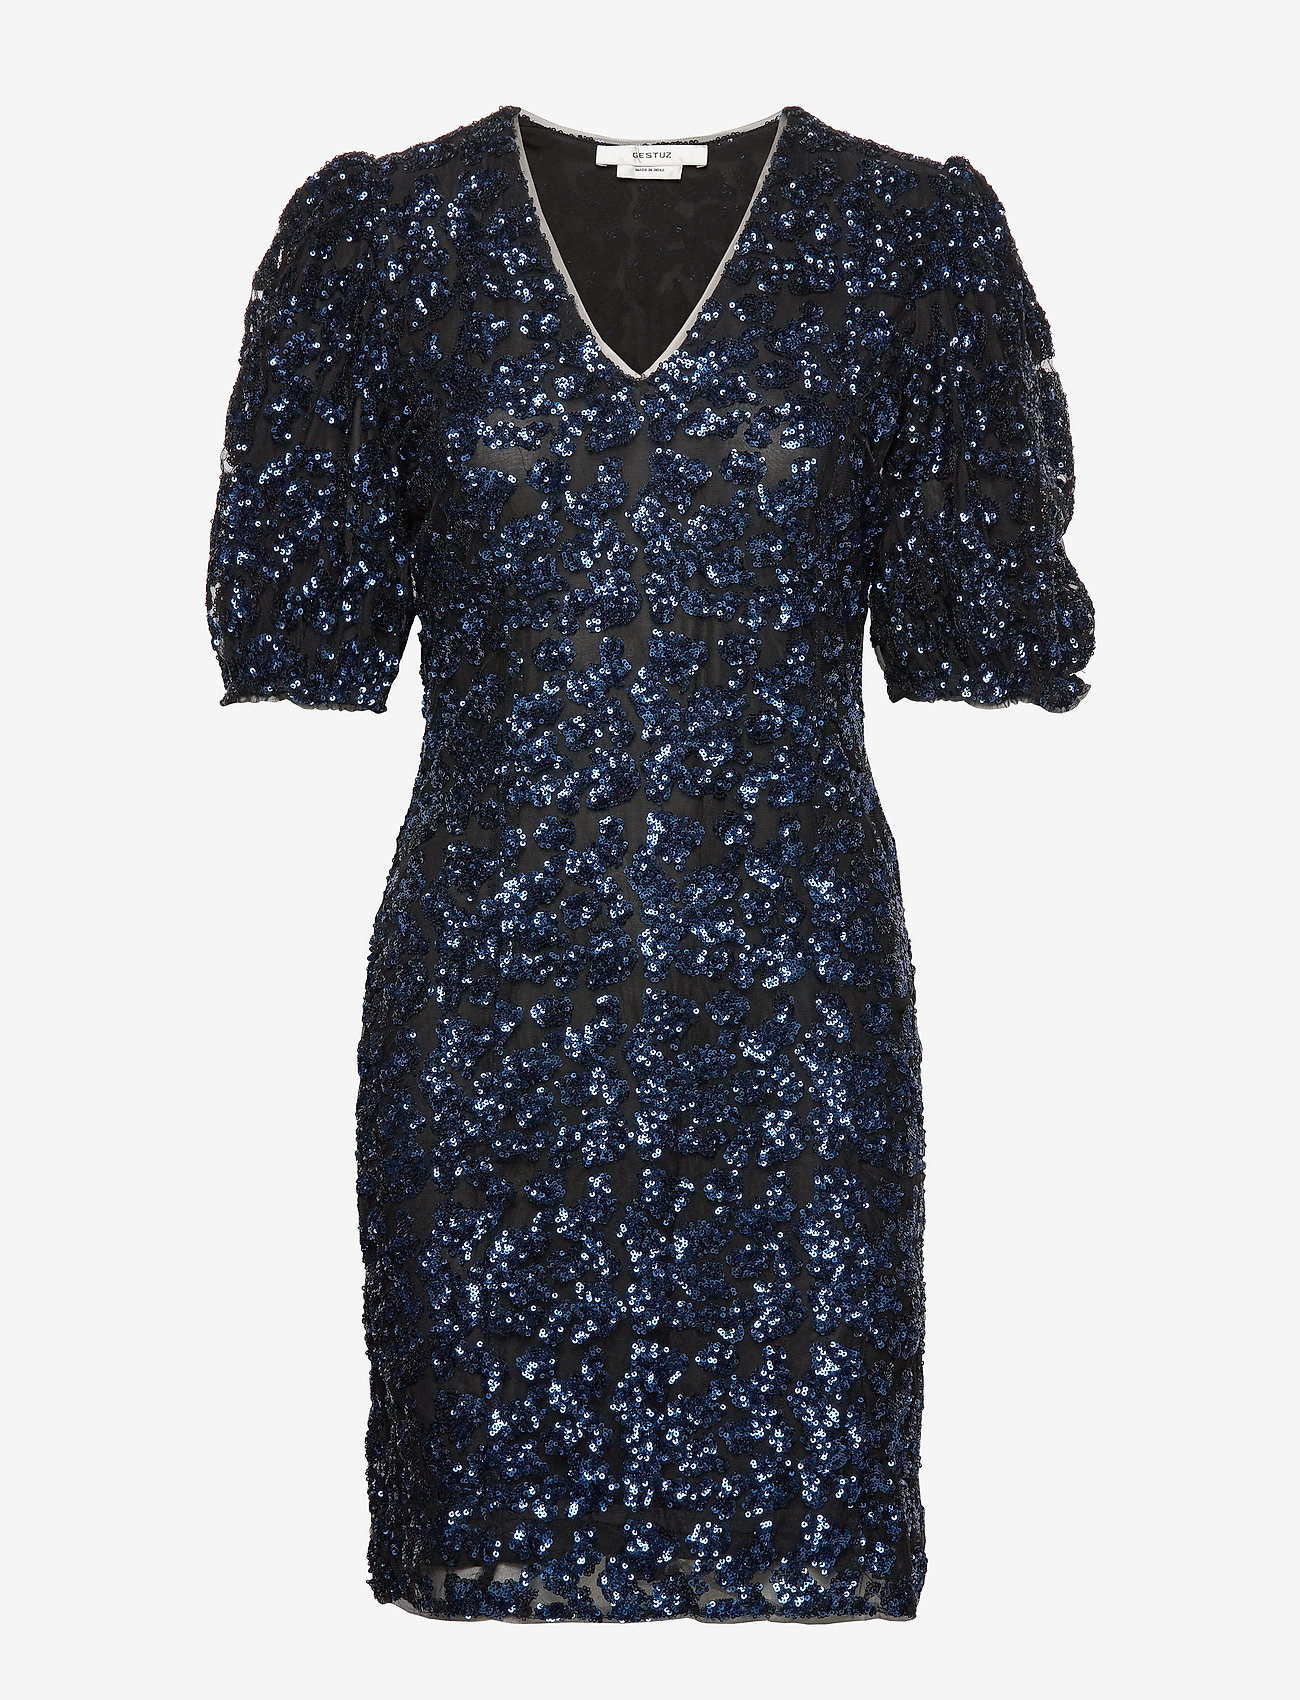 Gestuz - ElviraGZ dress YE19 - robes longeur du midi - blue